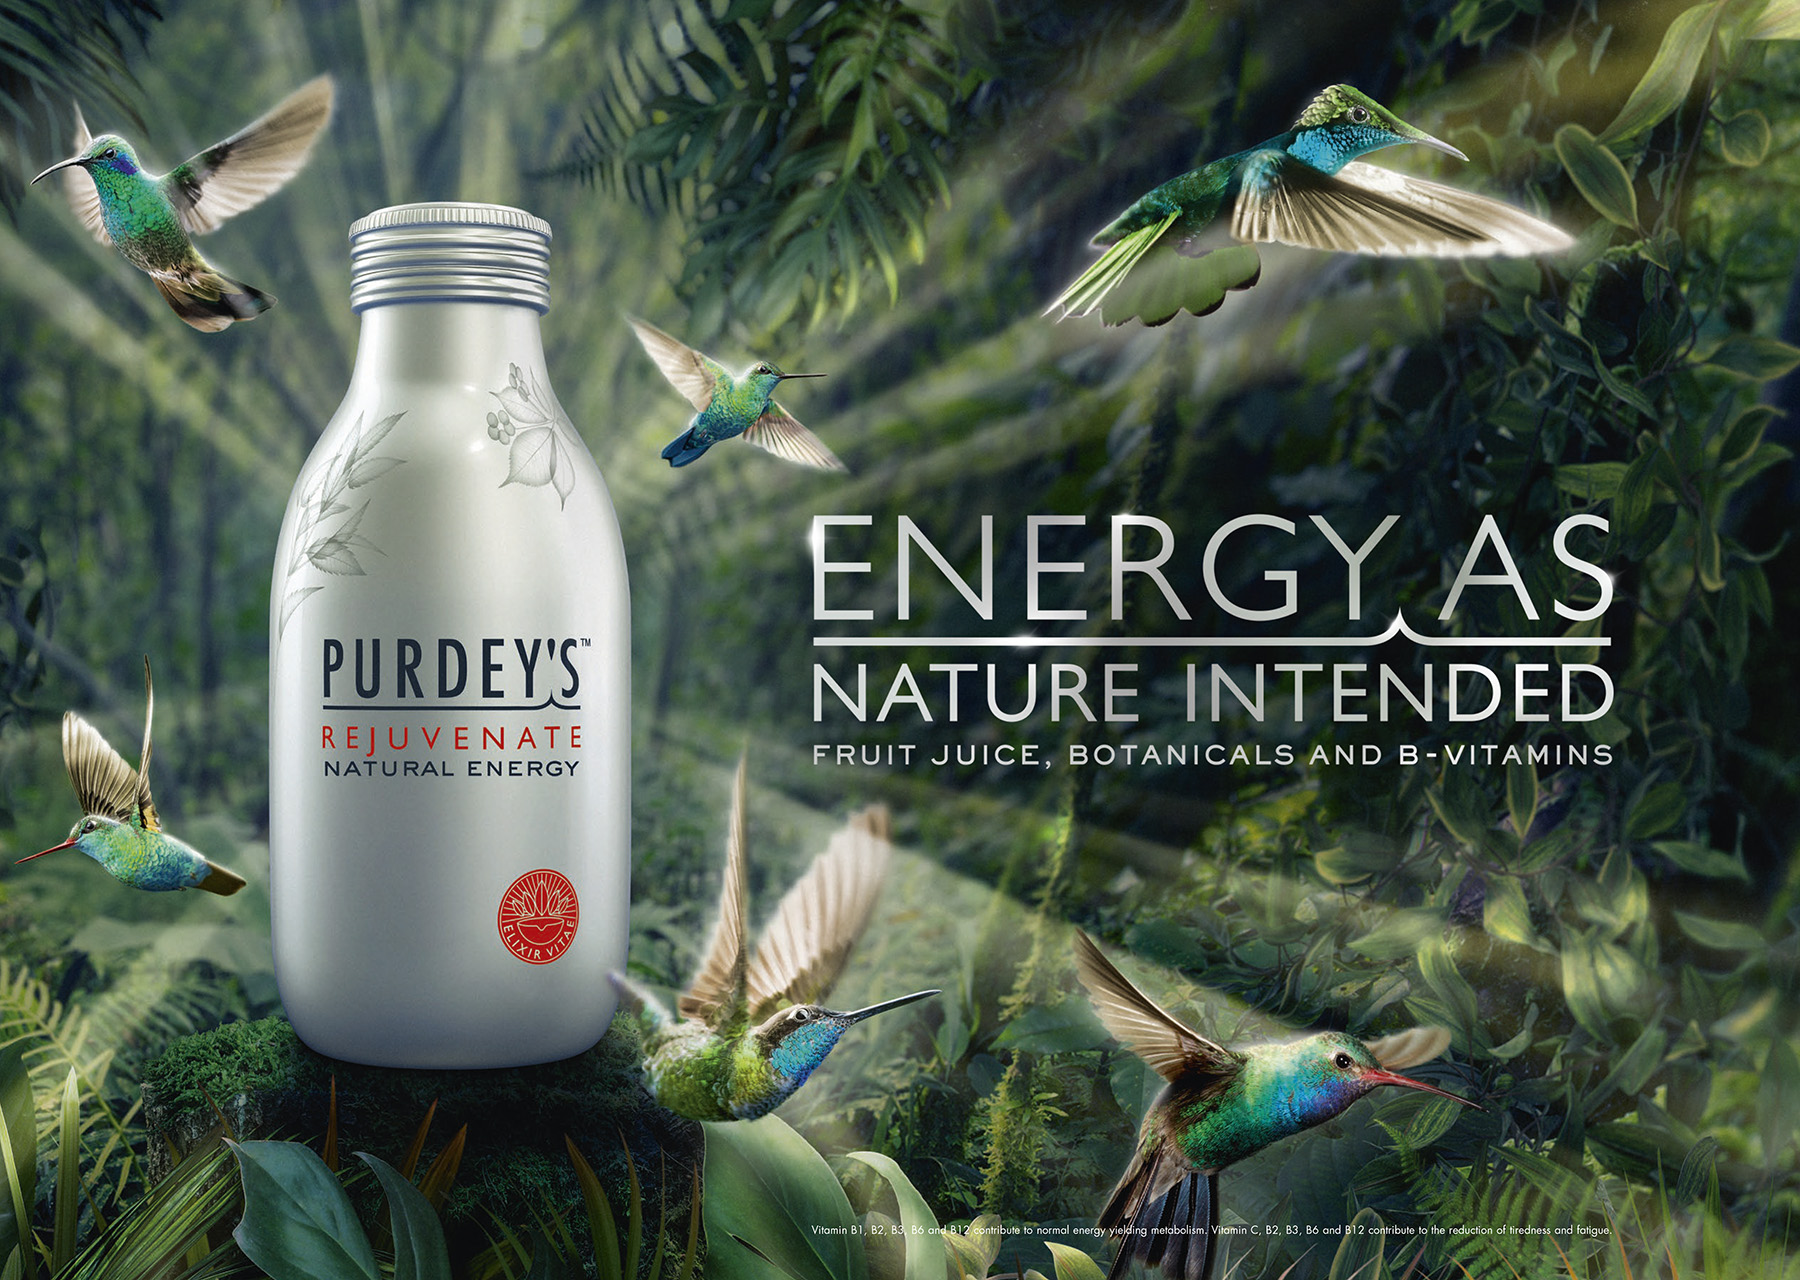 22909 Purdeys Energy A3 Landscape Website